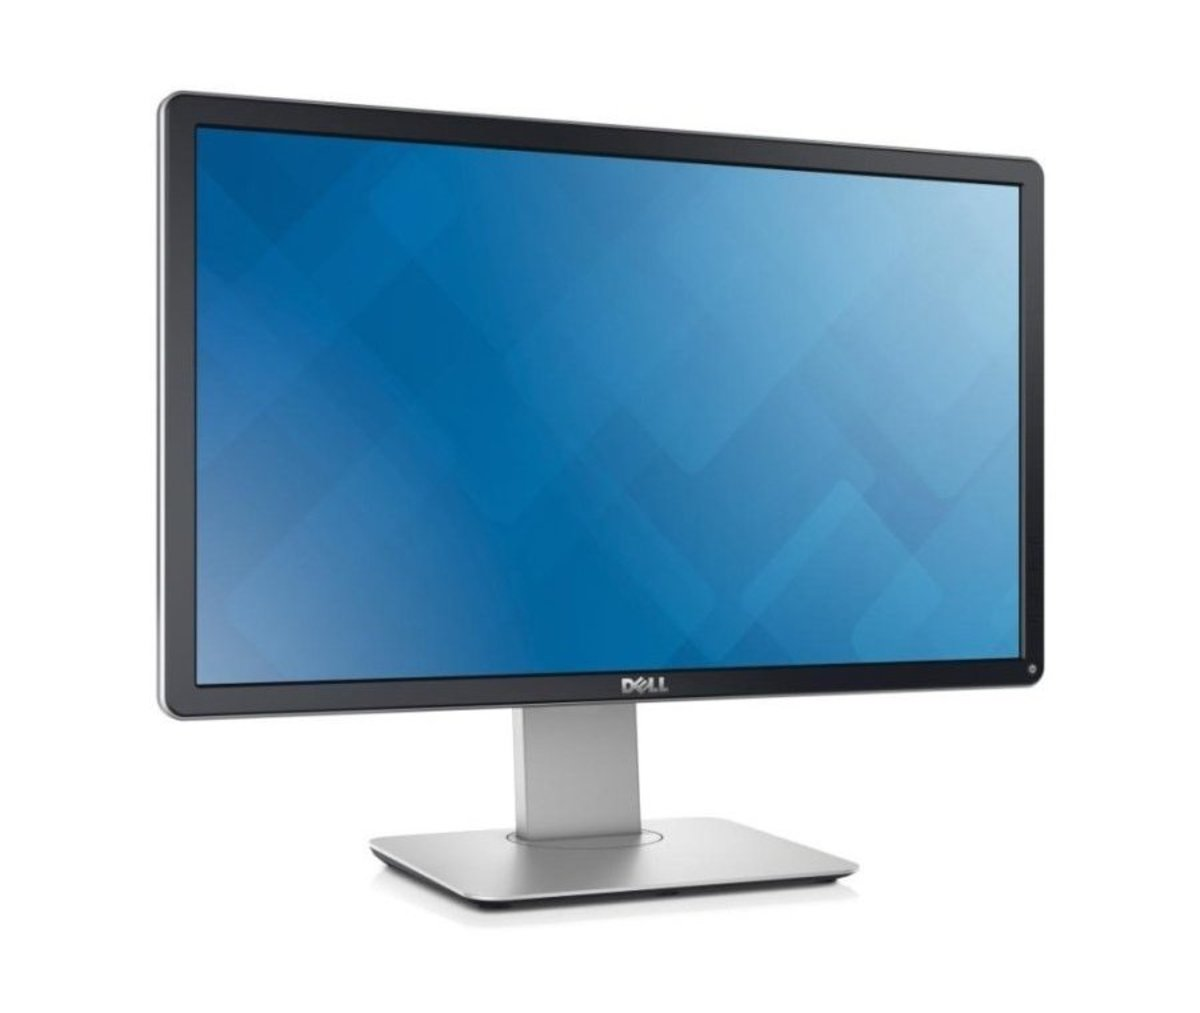 Like most LED-backlit LCDs, this monitor is quite thin and light. Unfortunately, its stand does lack the pivot feature.